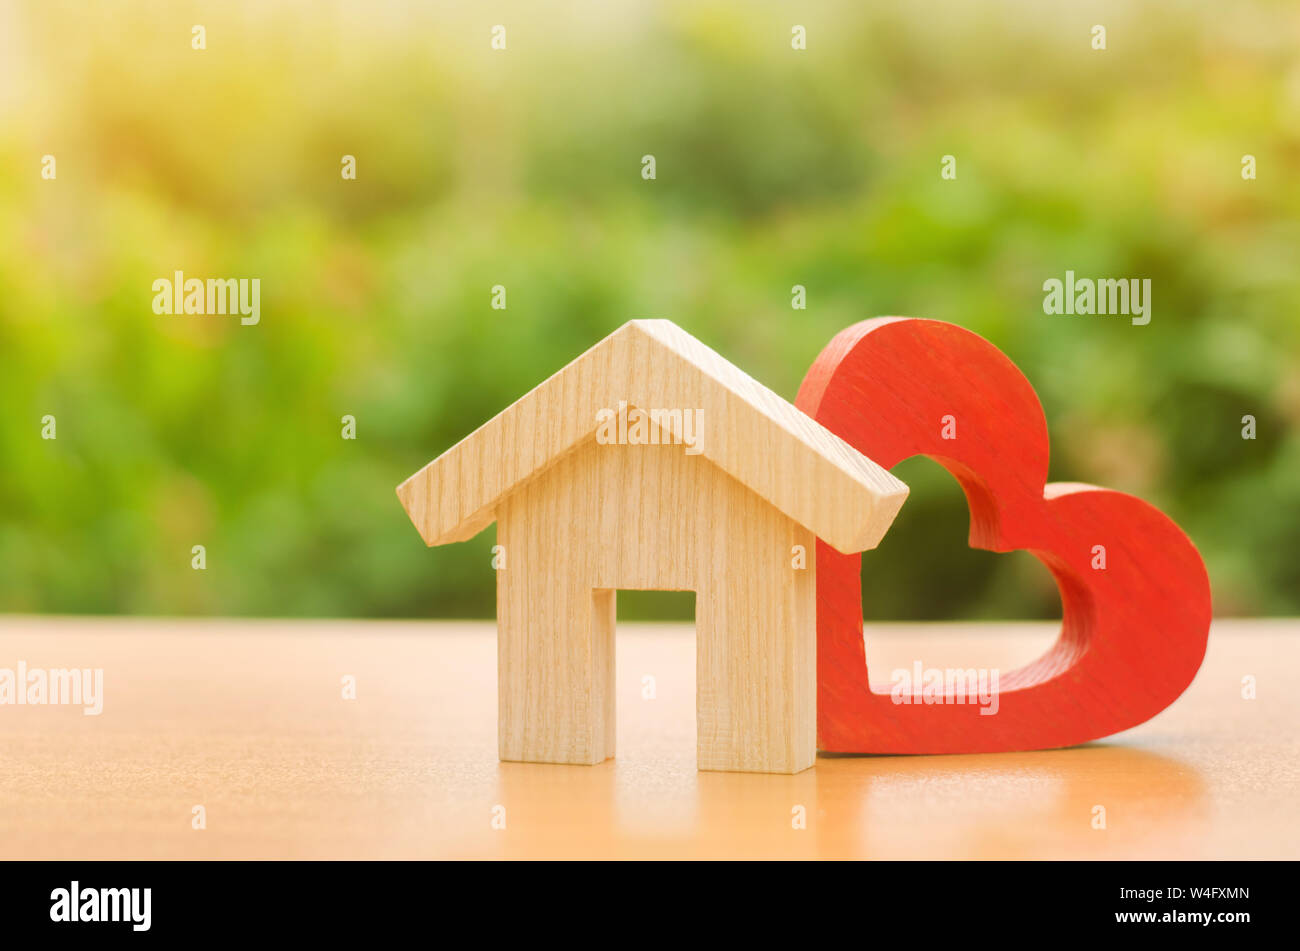 House with a red wooden heart. House of lovers. Parental hospitable home. Housing construction of your dreams. Buying and renting real estate. Afforda Stock Photo